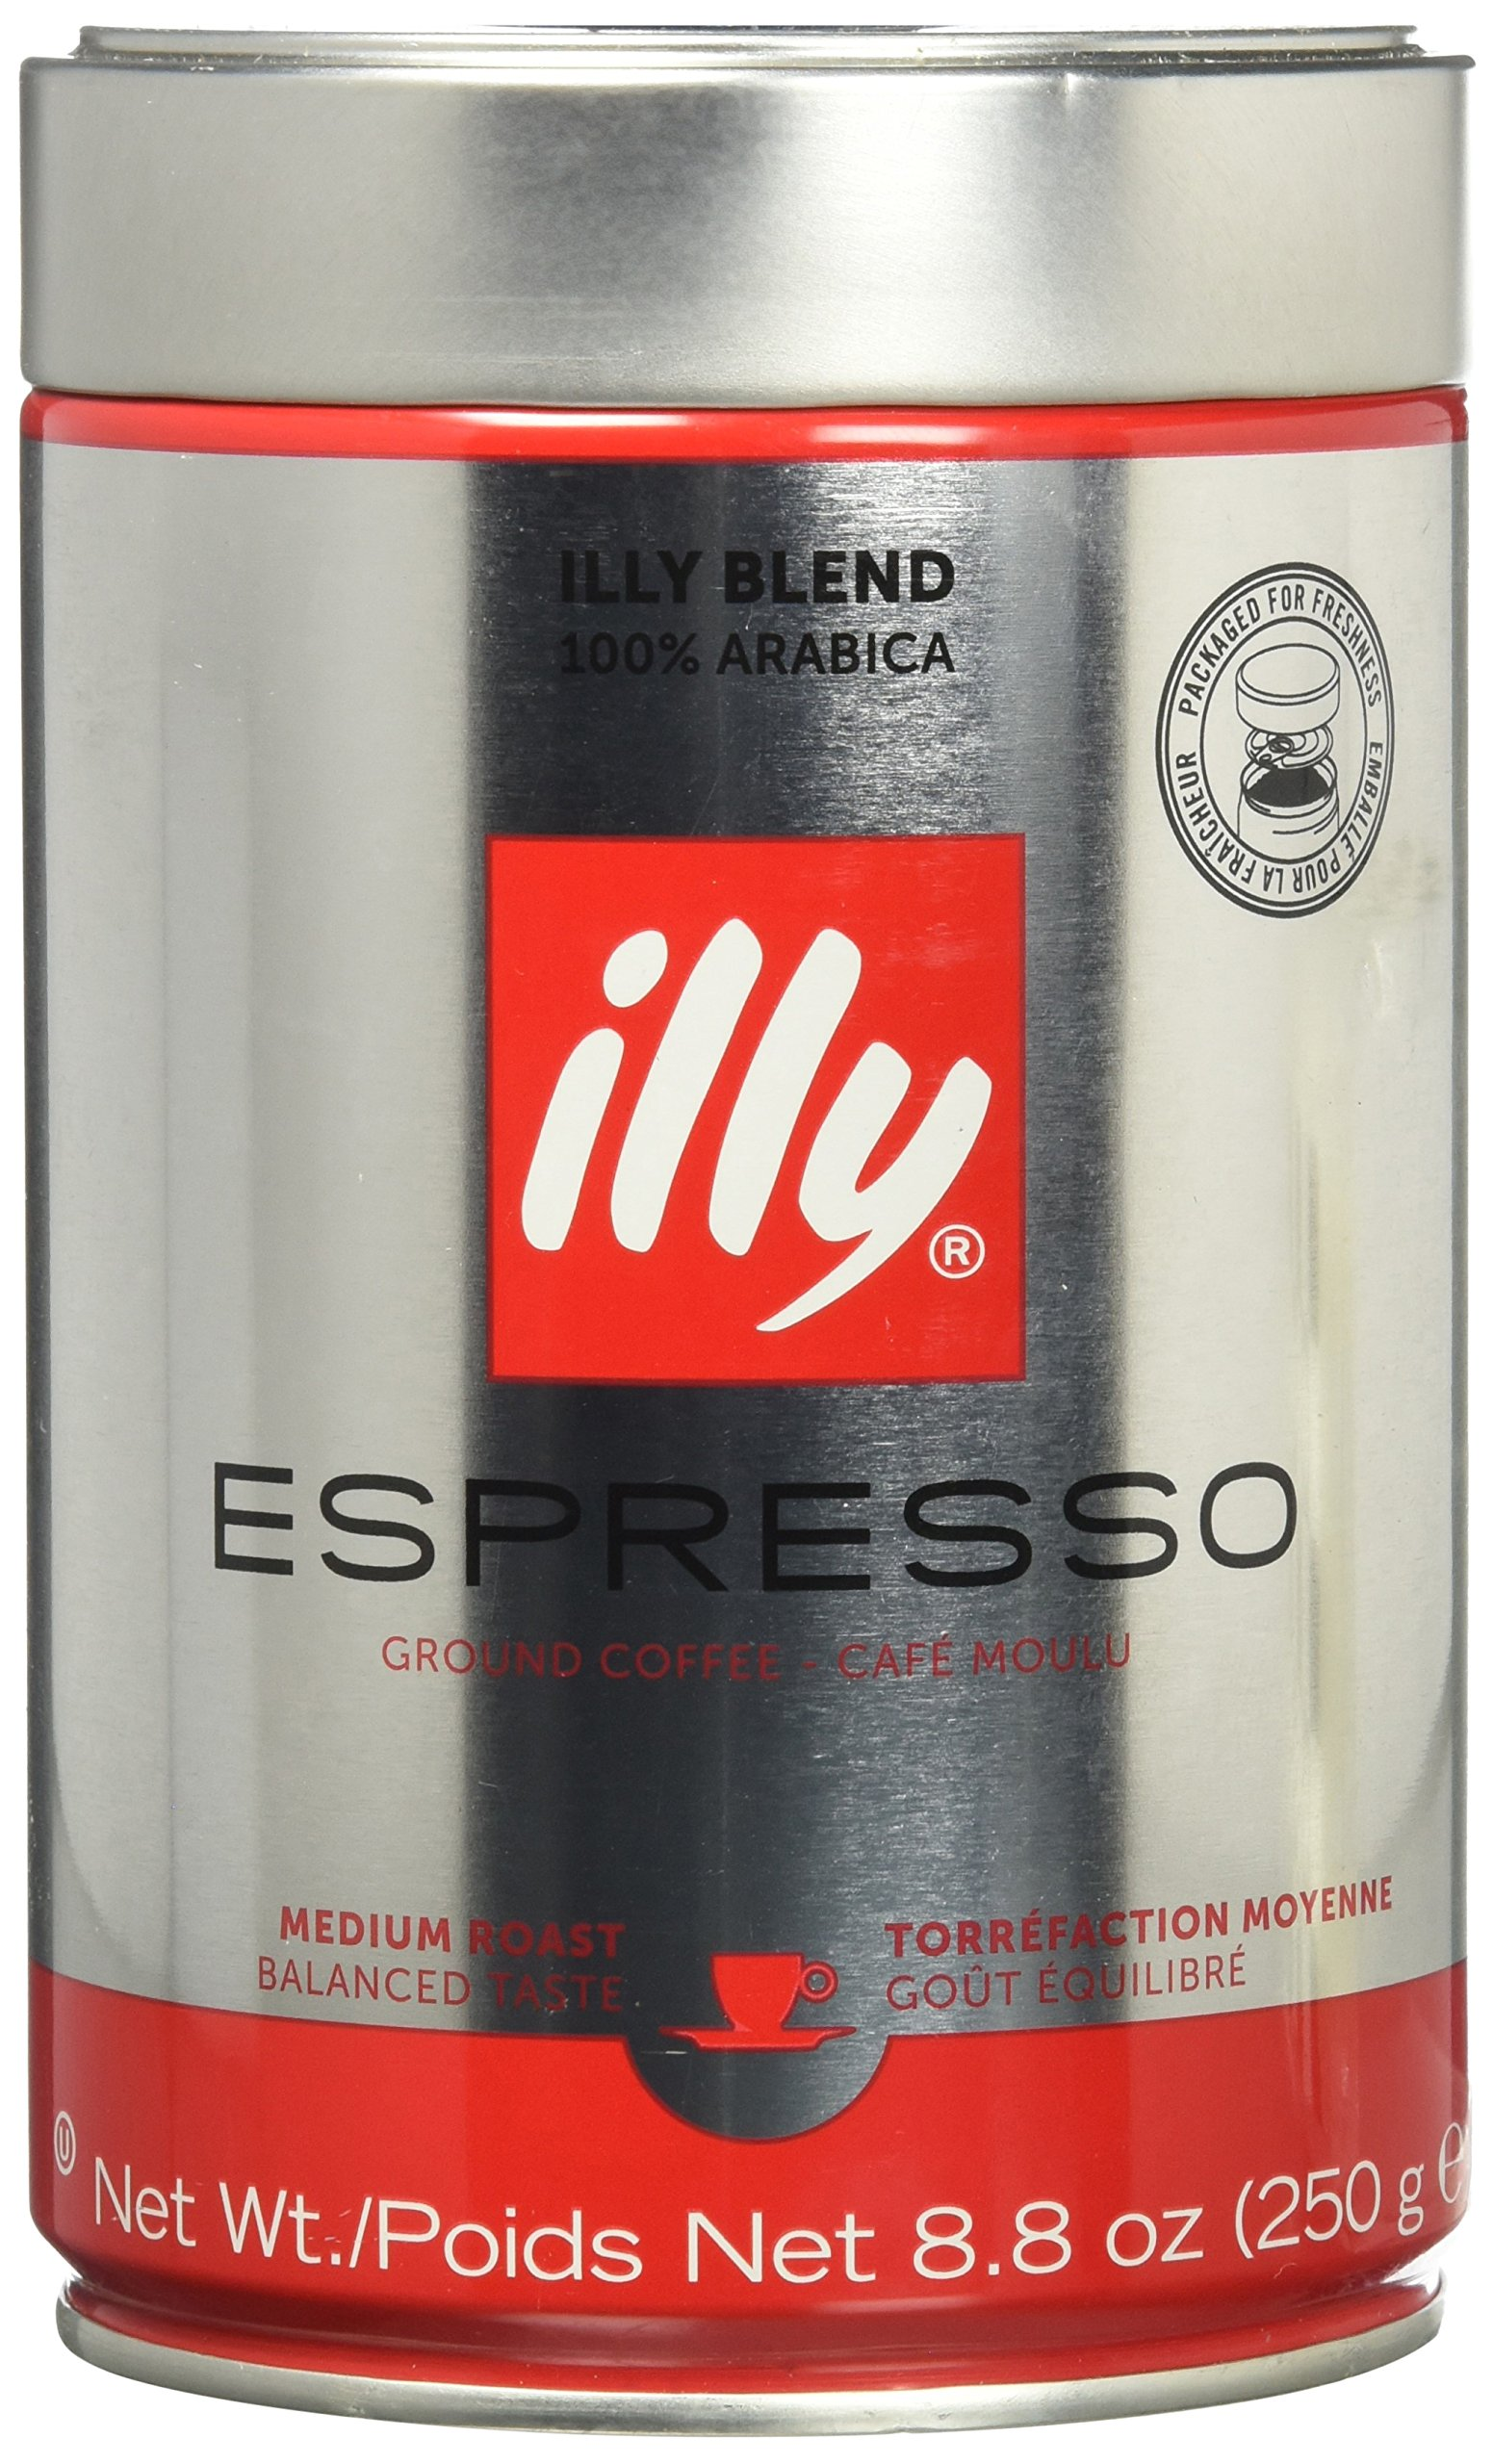 illy Coffee, Espresso Ground, Medium Roast, 100% Arabica Bean Signature Italian Blend, Premium Gourmet Roast Pressurized Fresh 8.8 Ounce Tin, Espresso Machine Preparations.